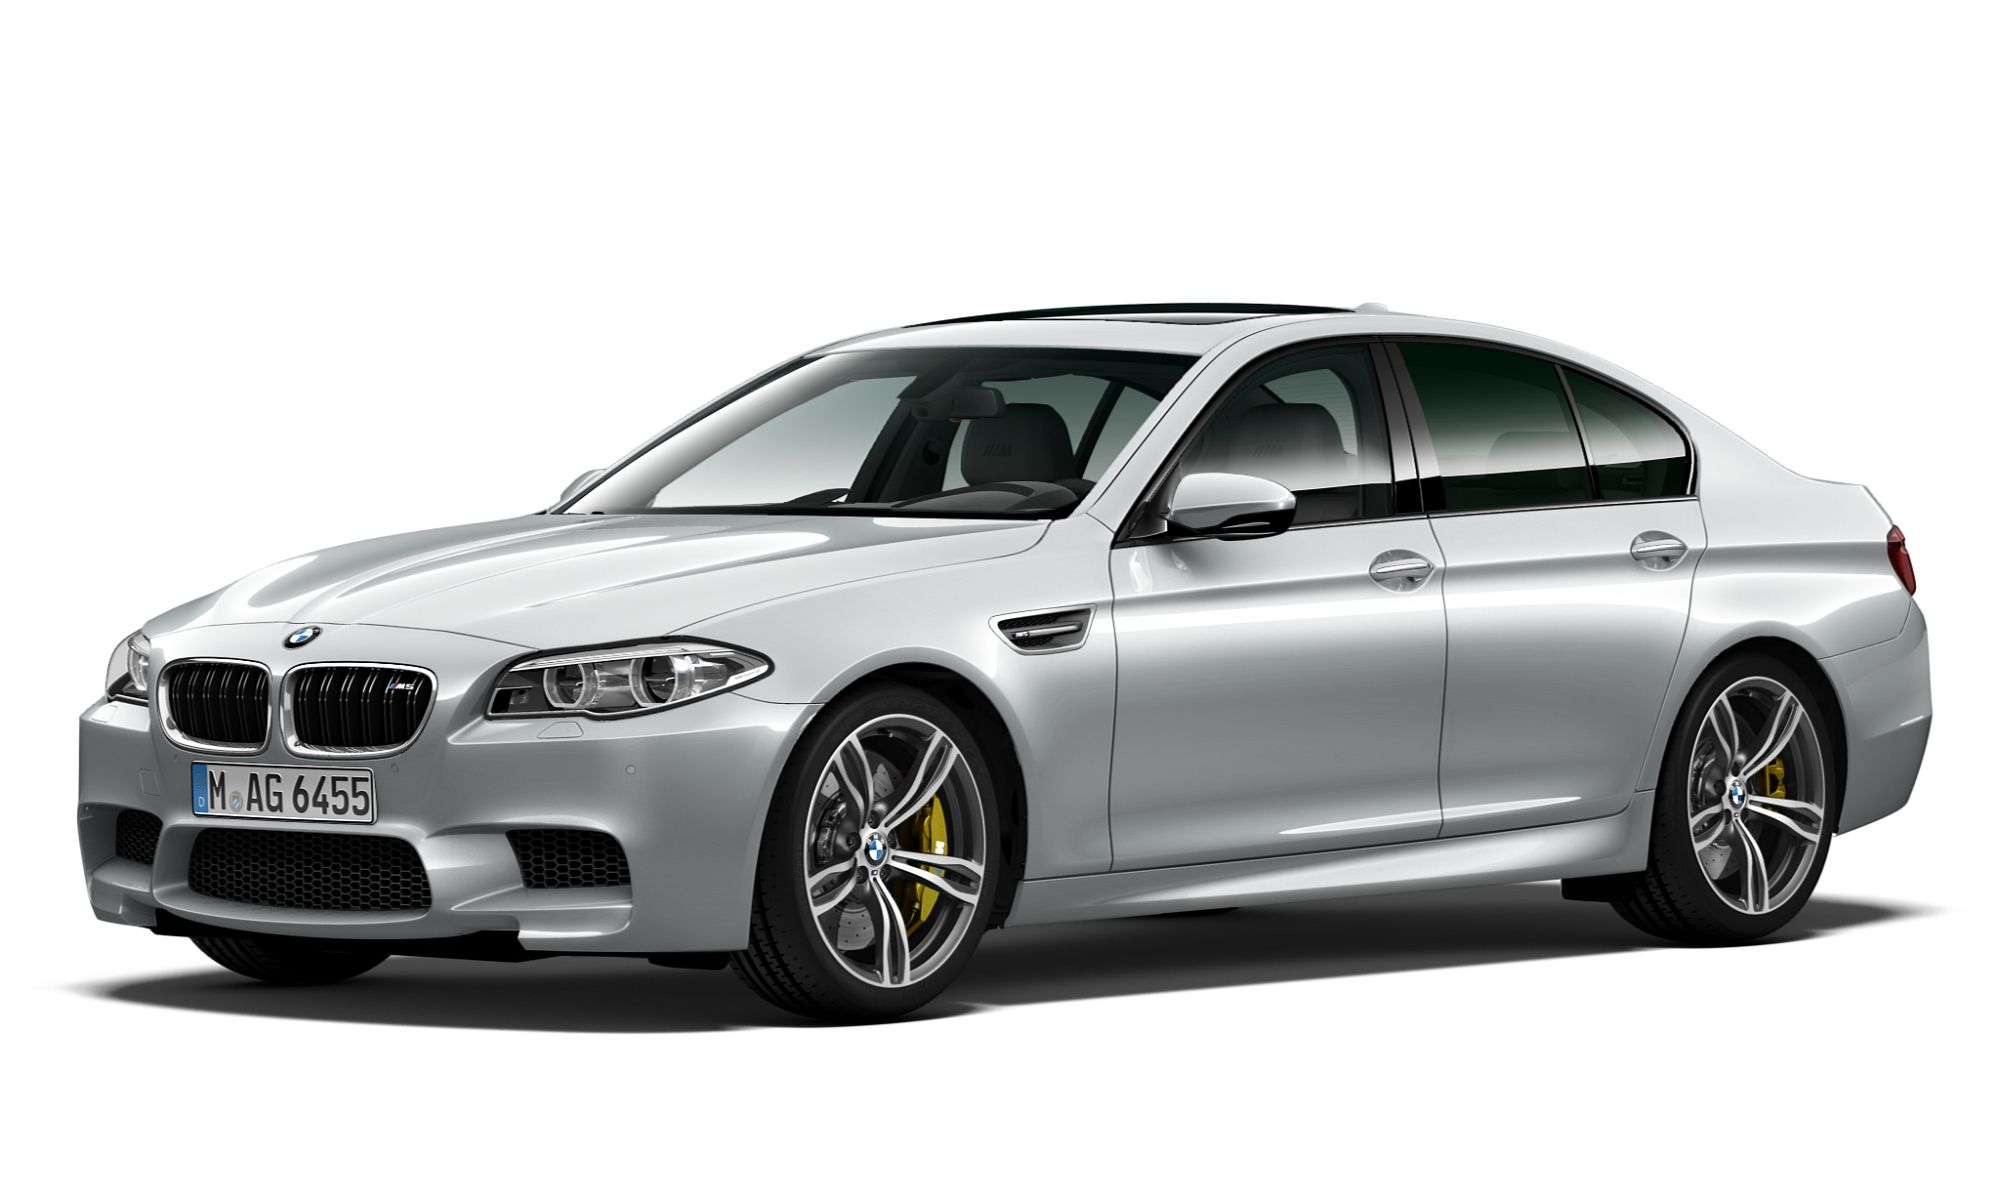 Bmw M5 Pure Metal Edition With 600 Horsepower Bmw Bmw M5 Top 10 Luxury Cars